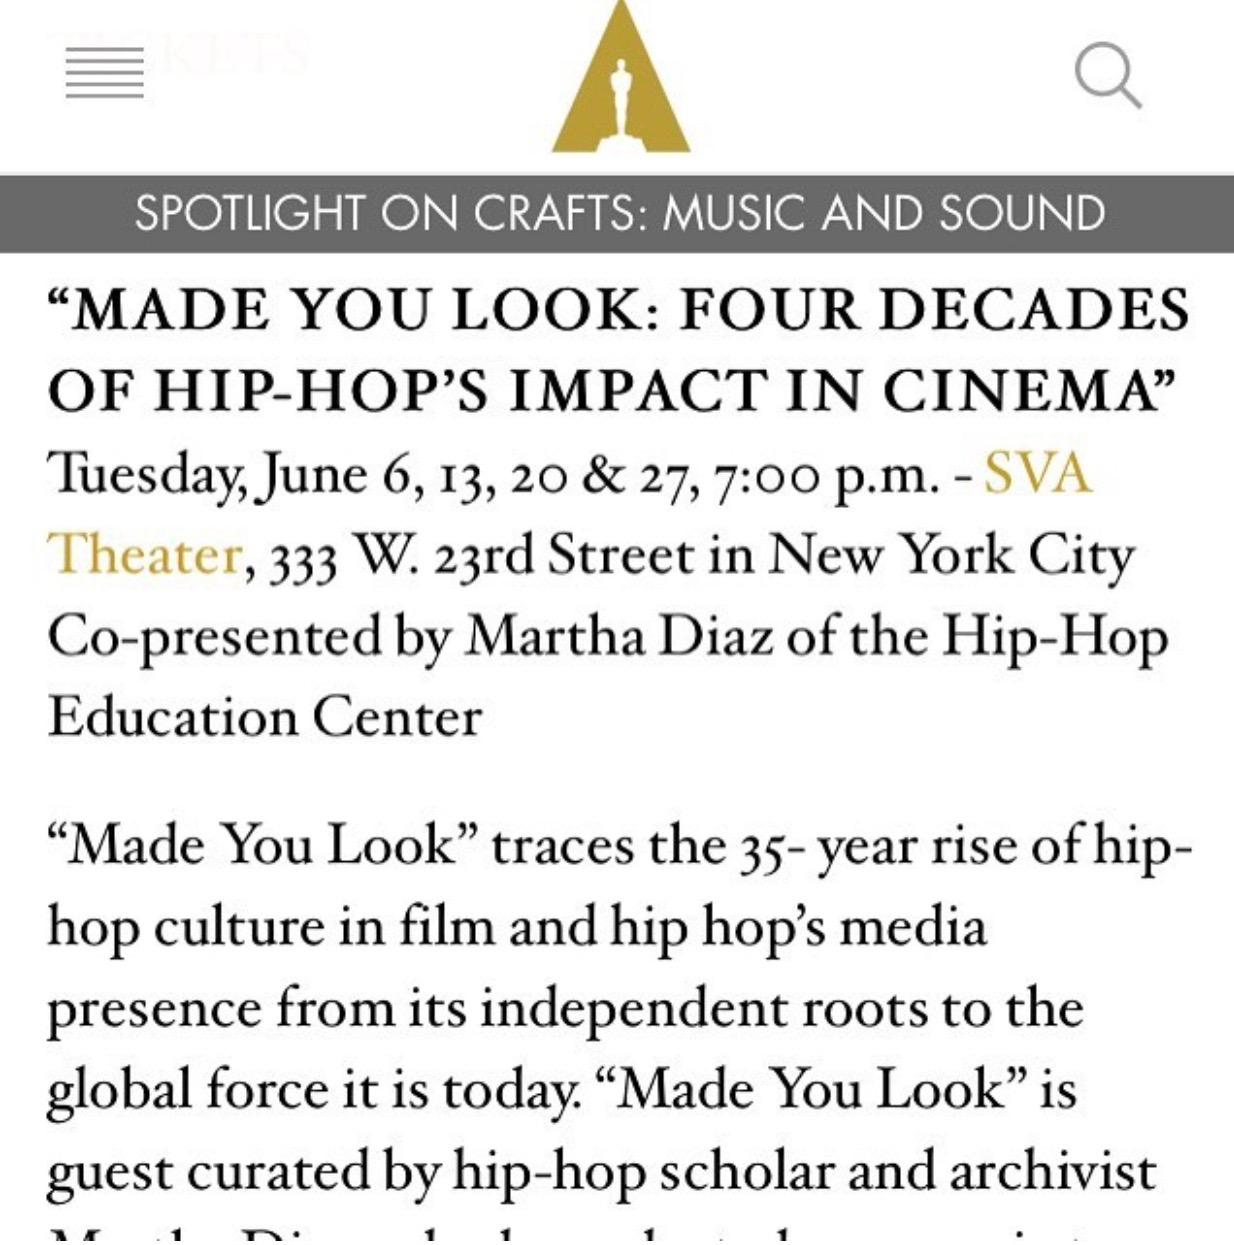 Made You Look - The Hip-Hop Education Center partnered with The Academy to present a Hip-Hop film series; Made You Look